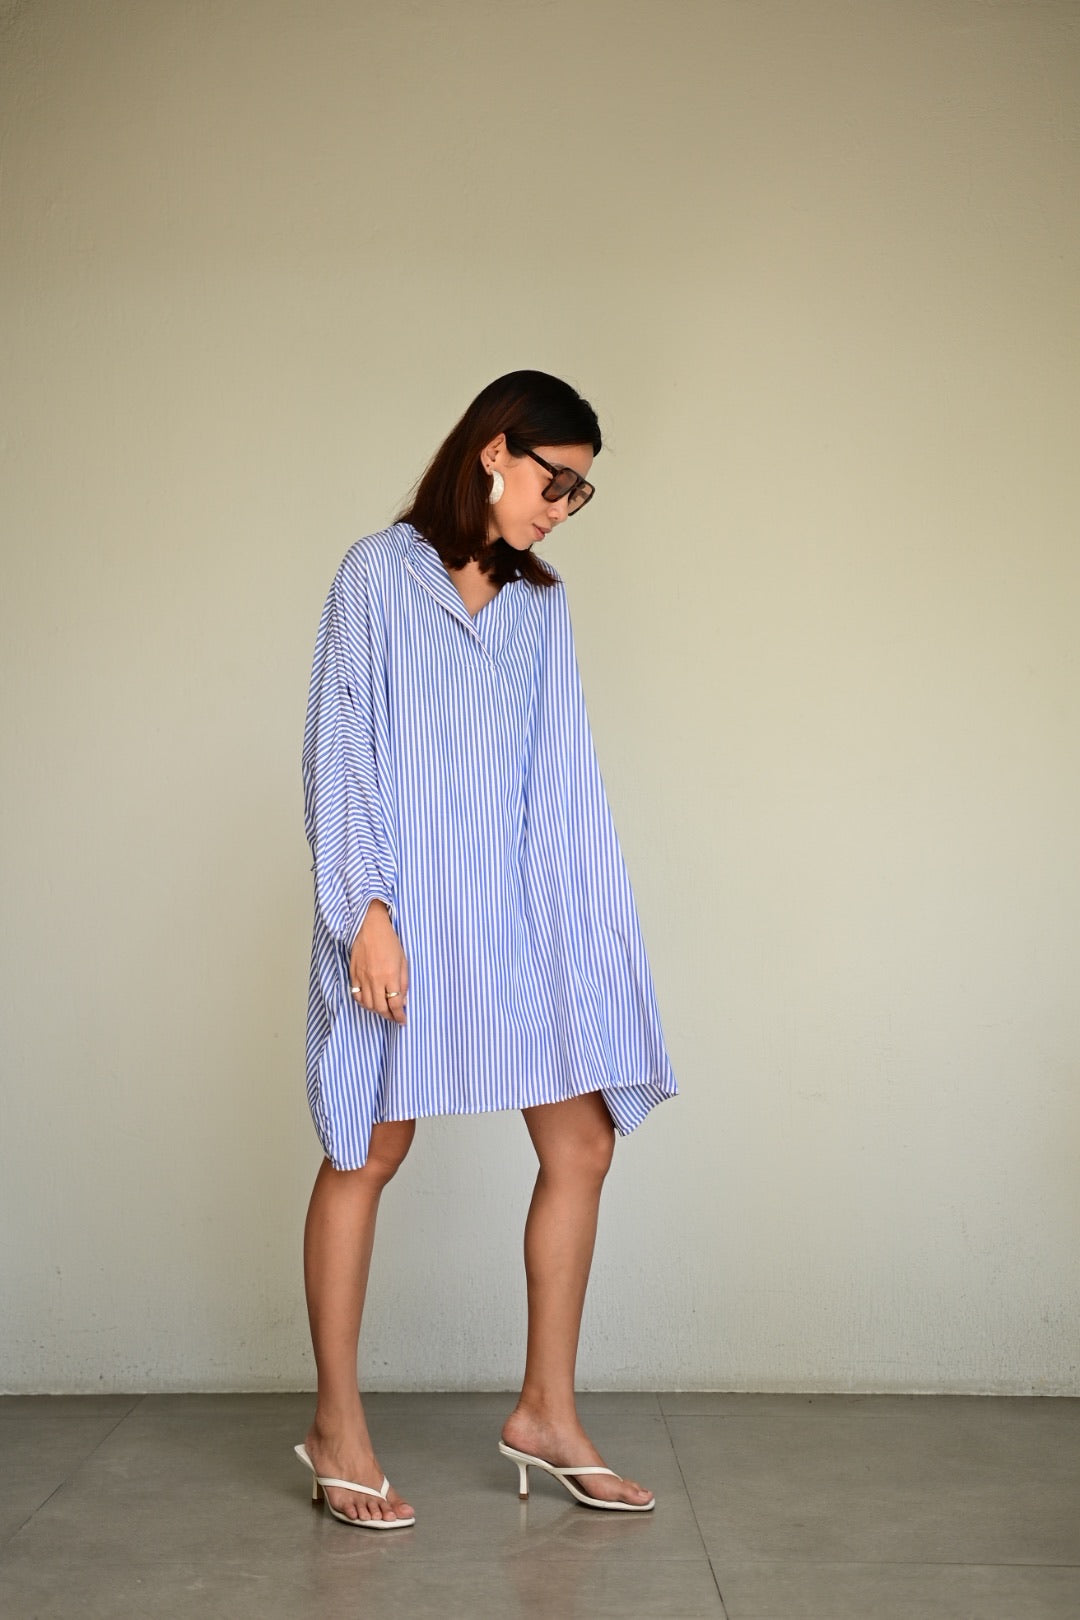 Kasbah Oversized Top and Culottes in Soft Cotton